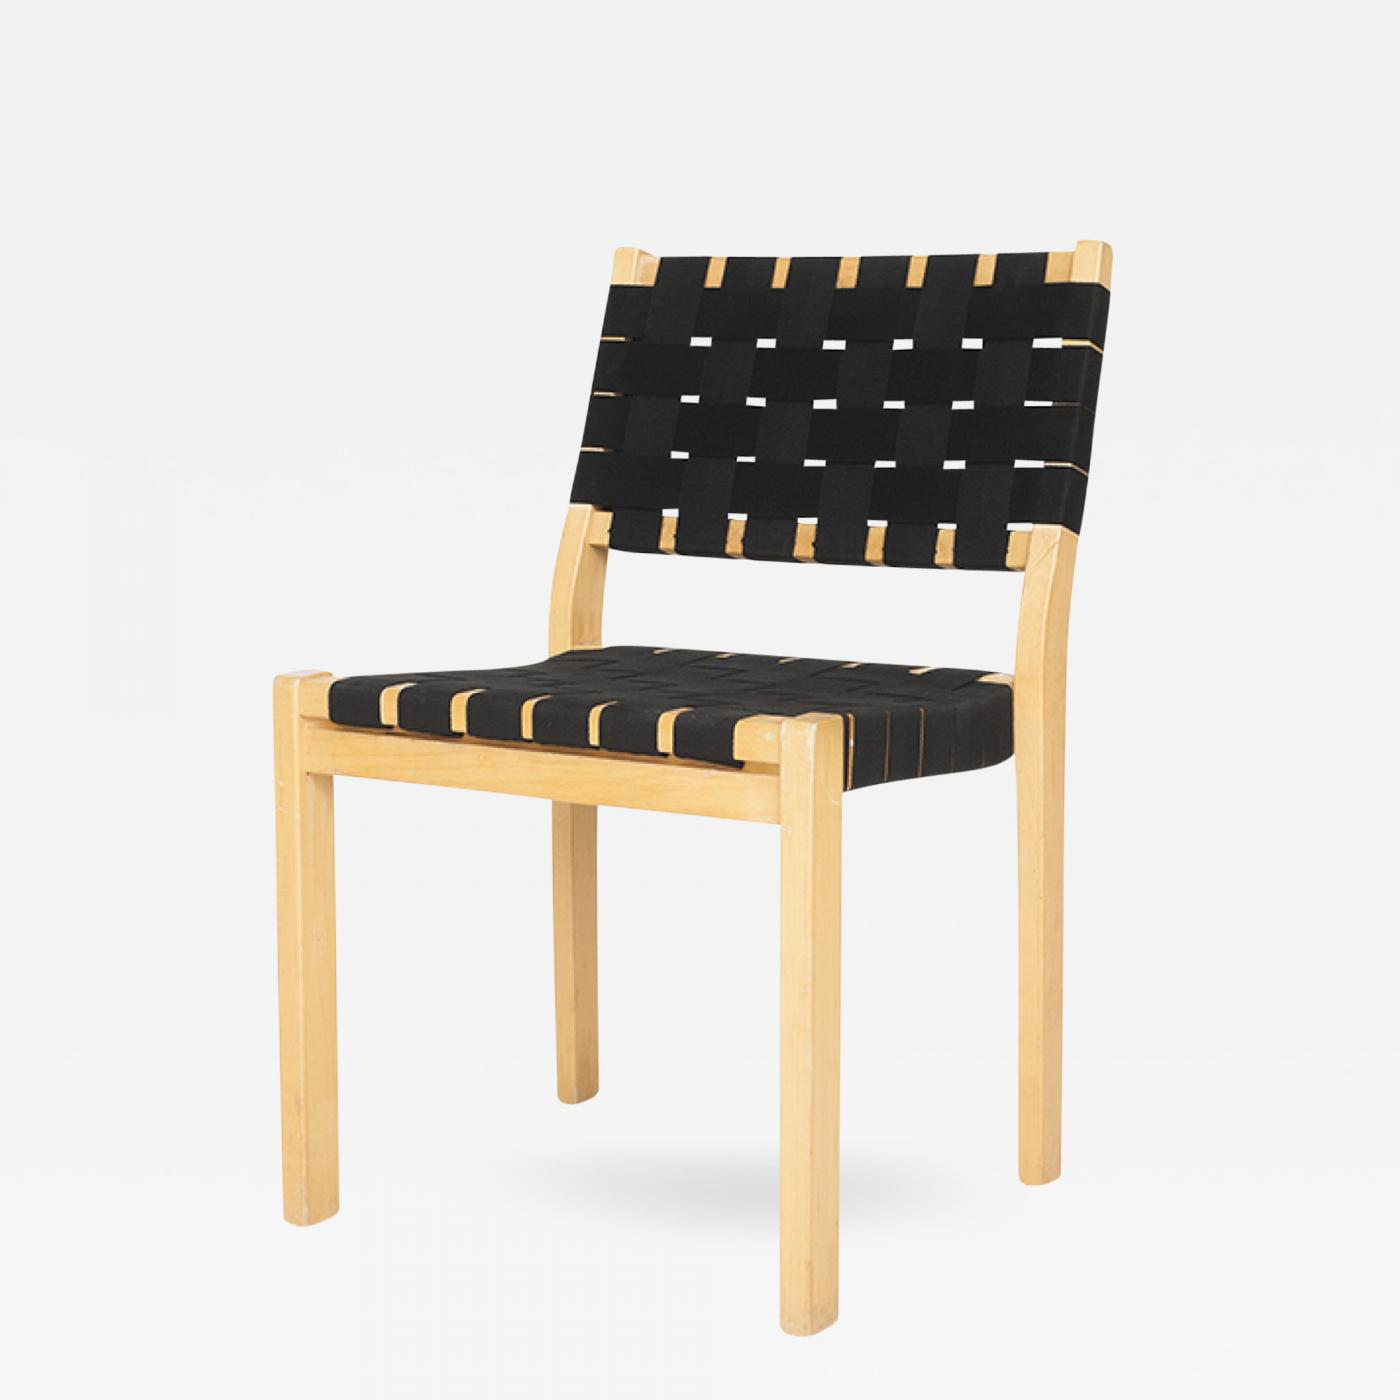 Listings / Furniture / Seating / Dining Chairs · Alvar Aalto 611 Chair